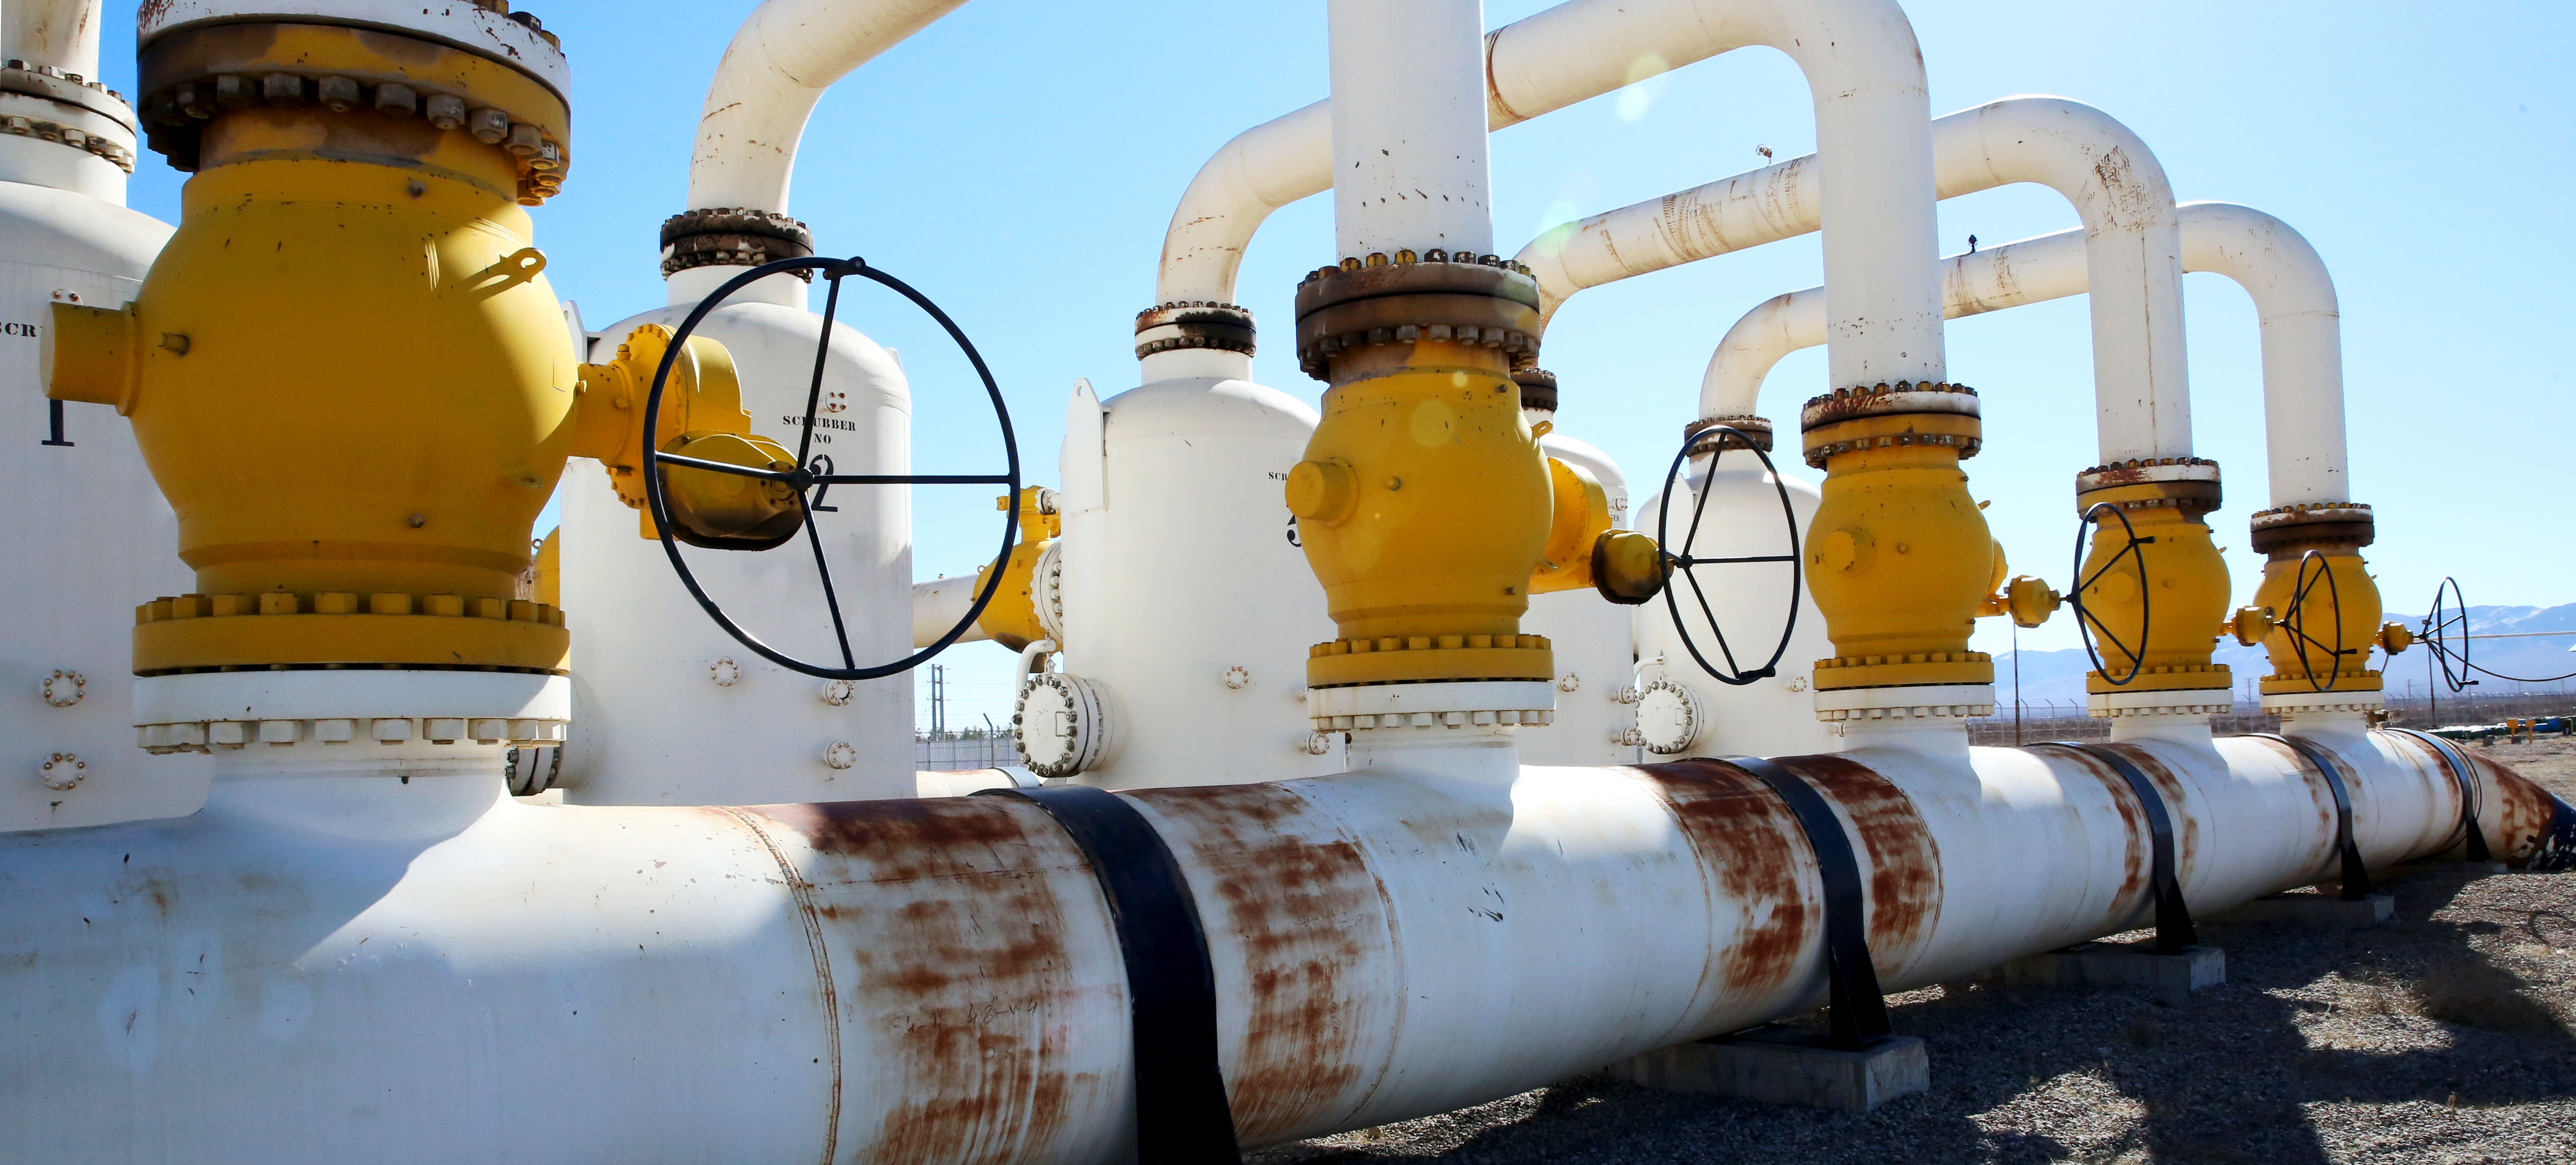 Iran IGDEC constructed 11 gas pressure booster stations last year